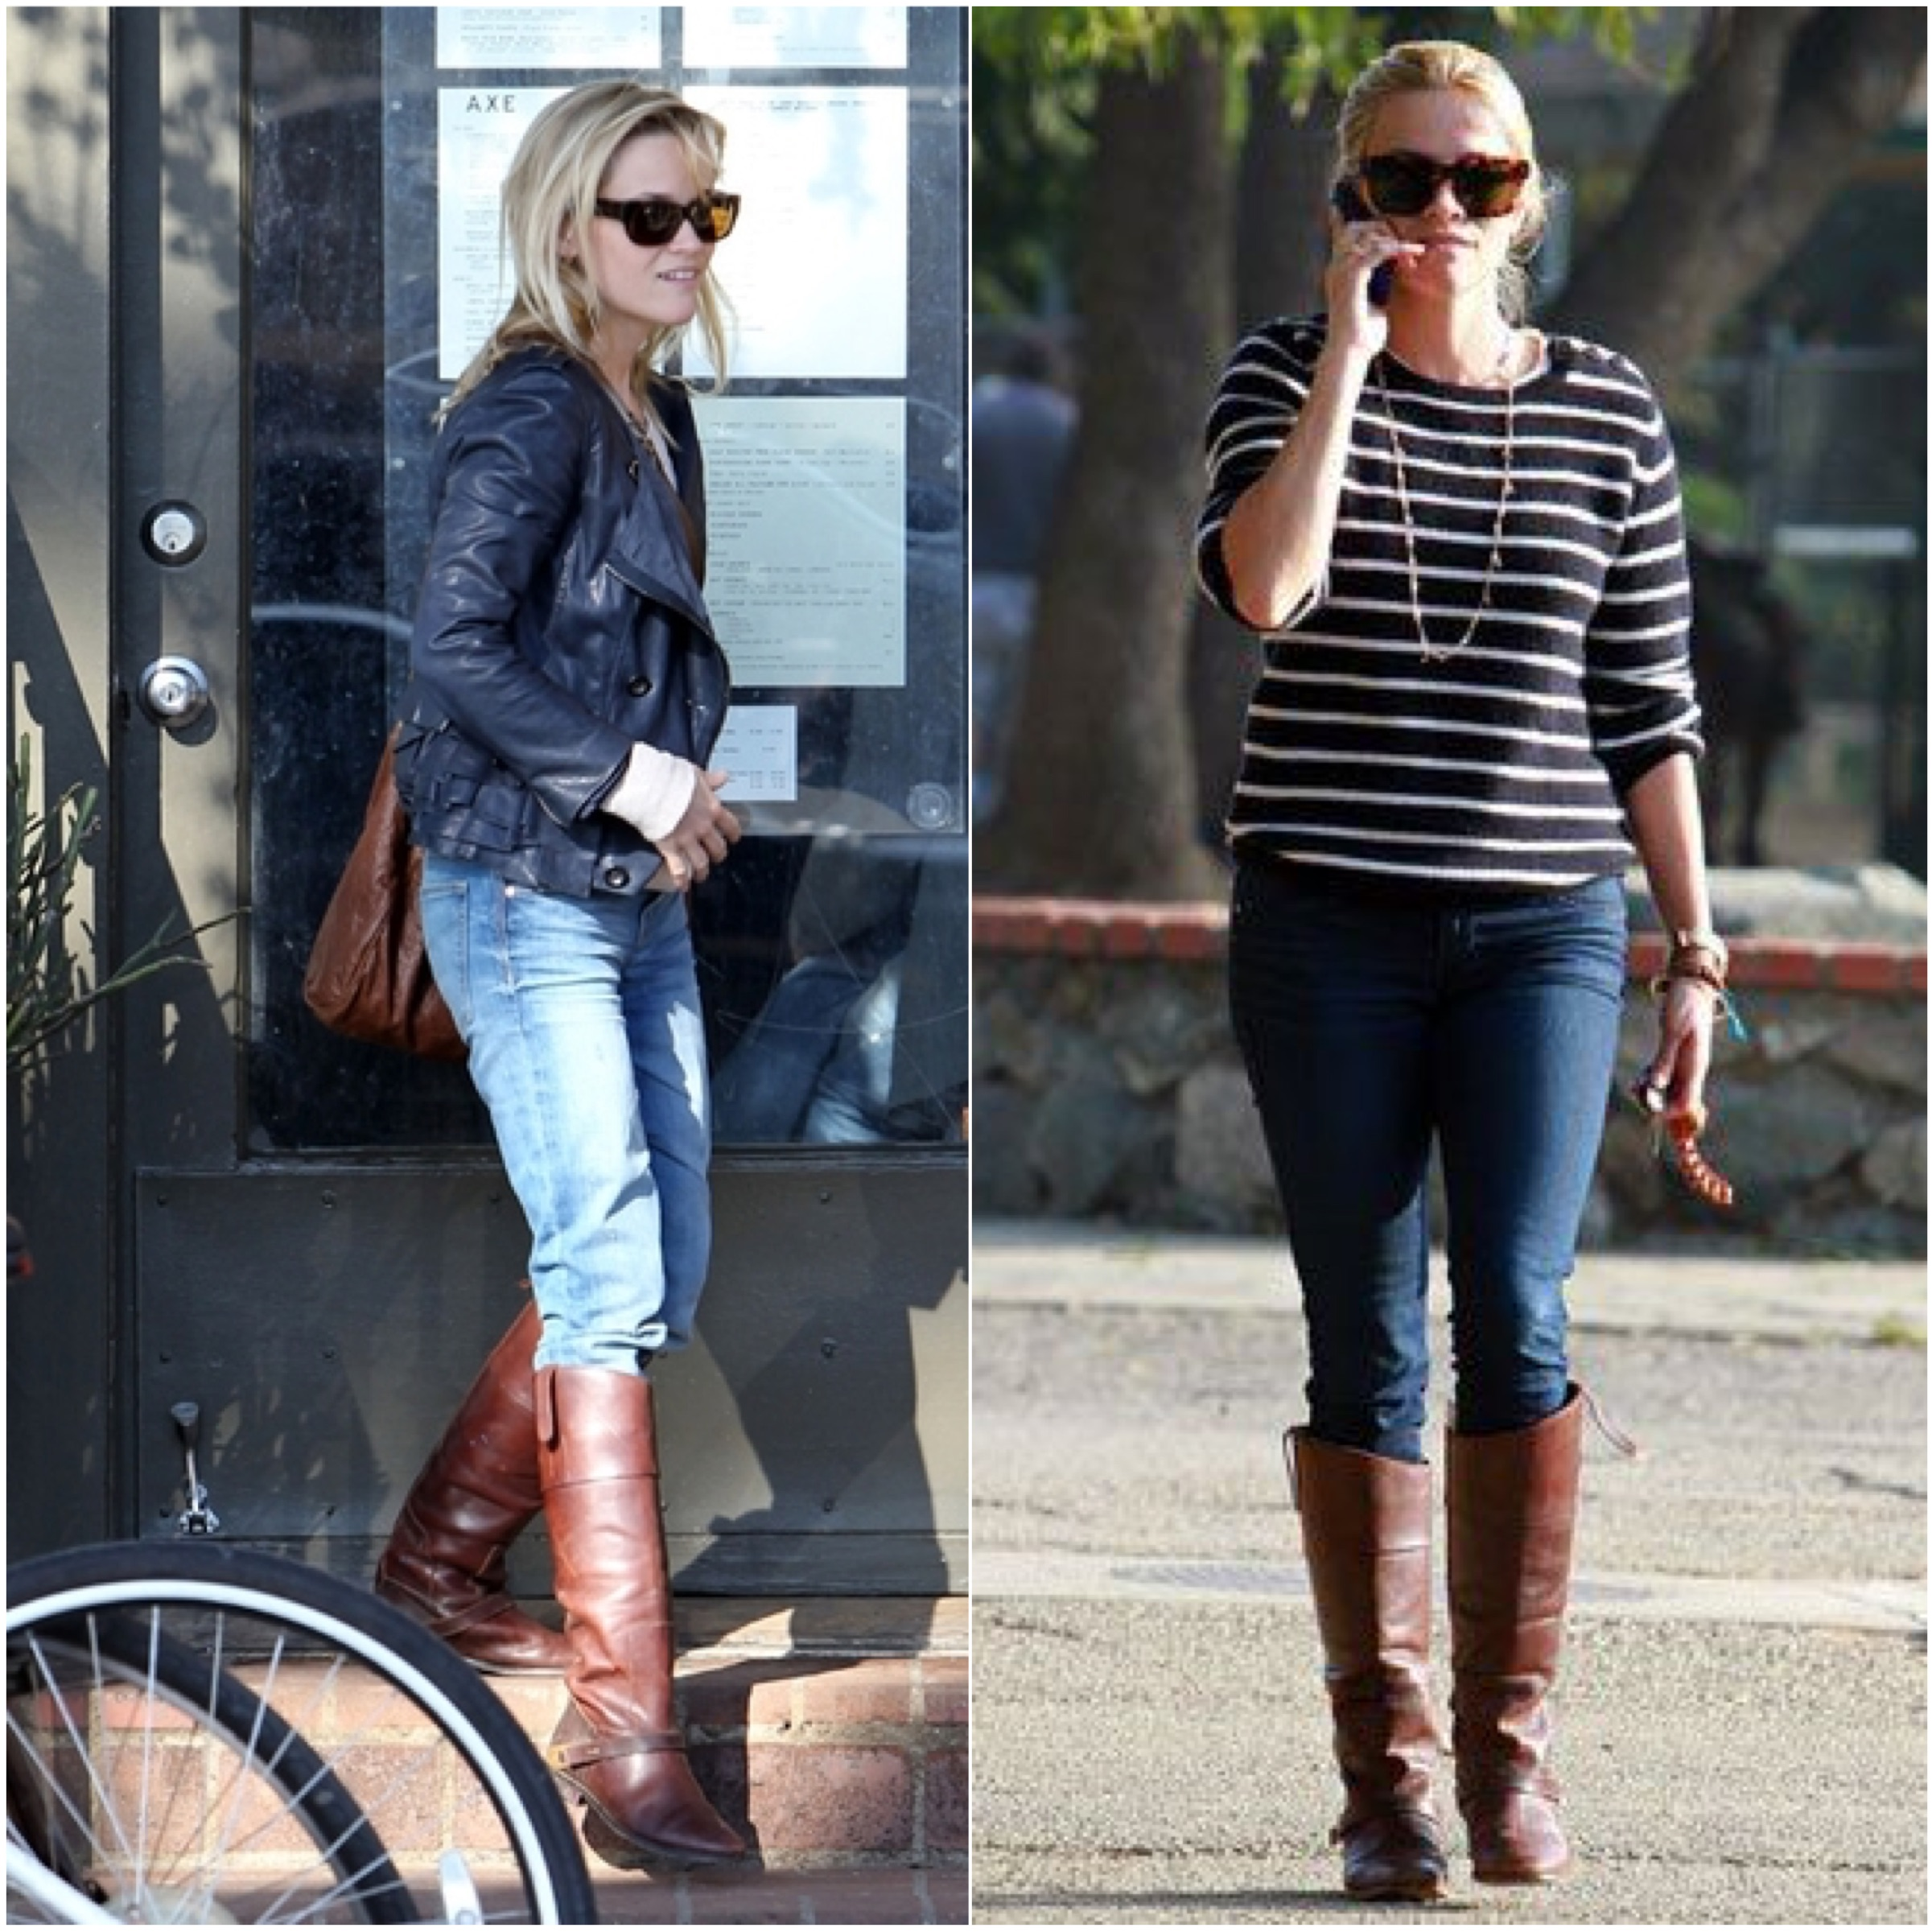 frye- reese witherspoon